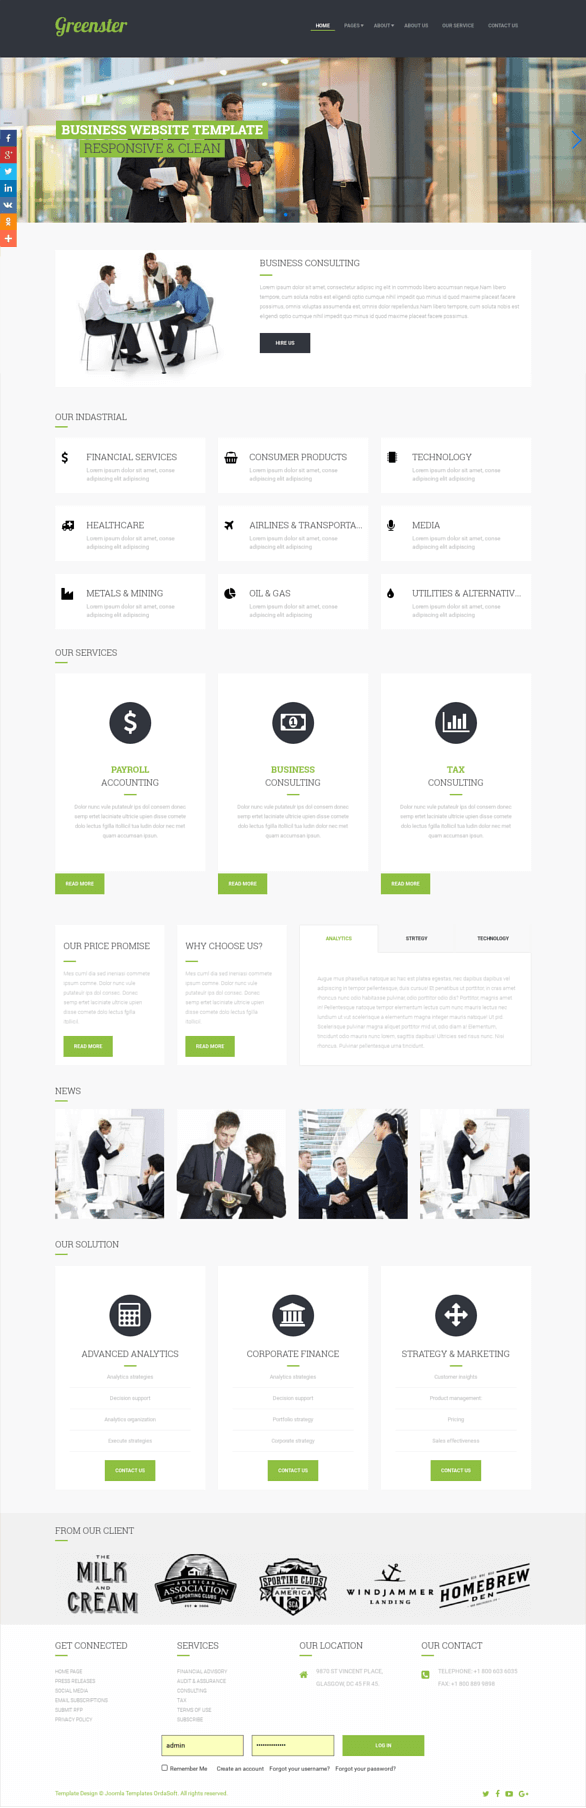 Greenster, Business Joomla template for create business website